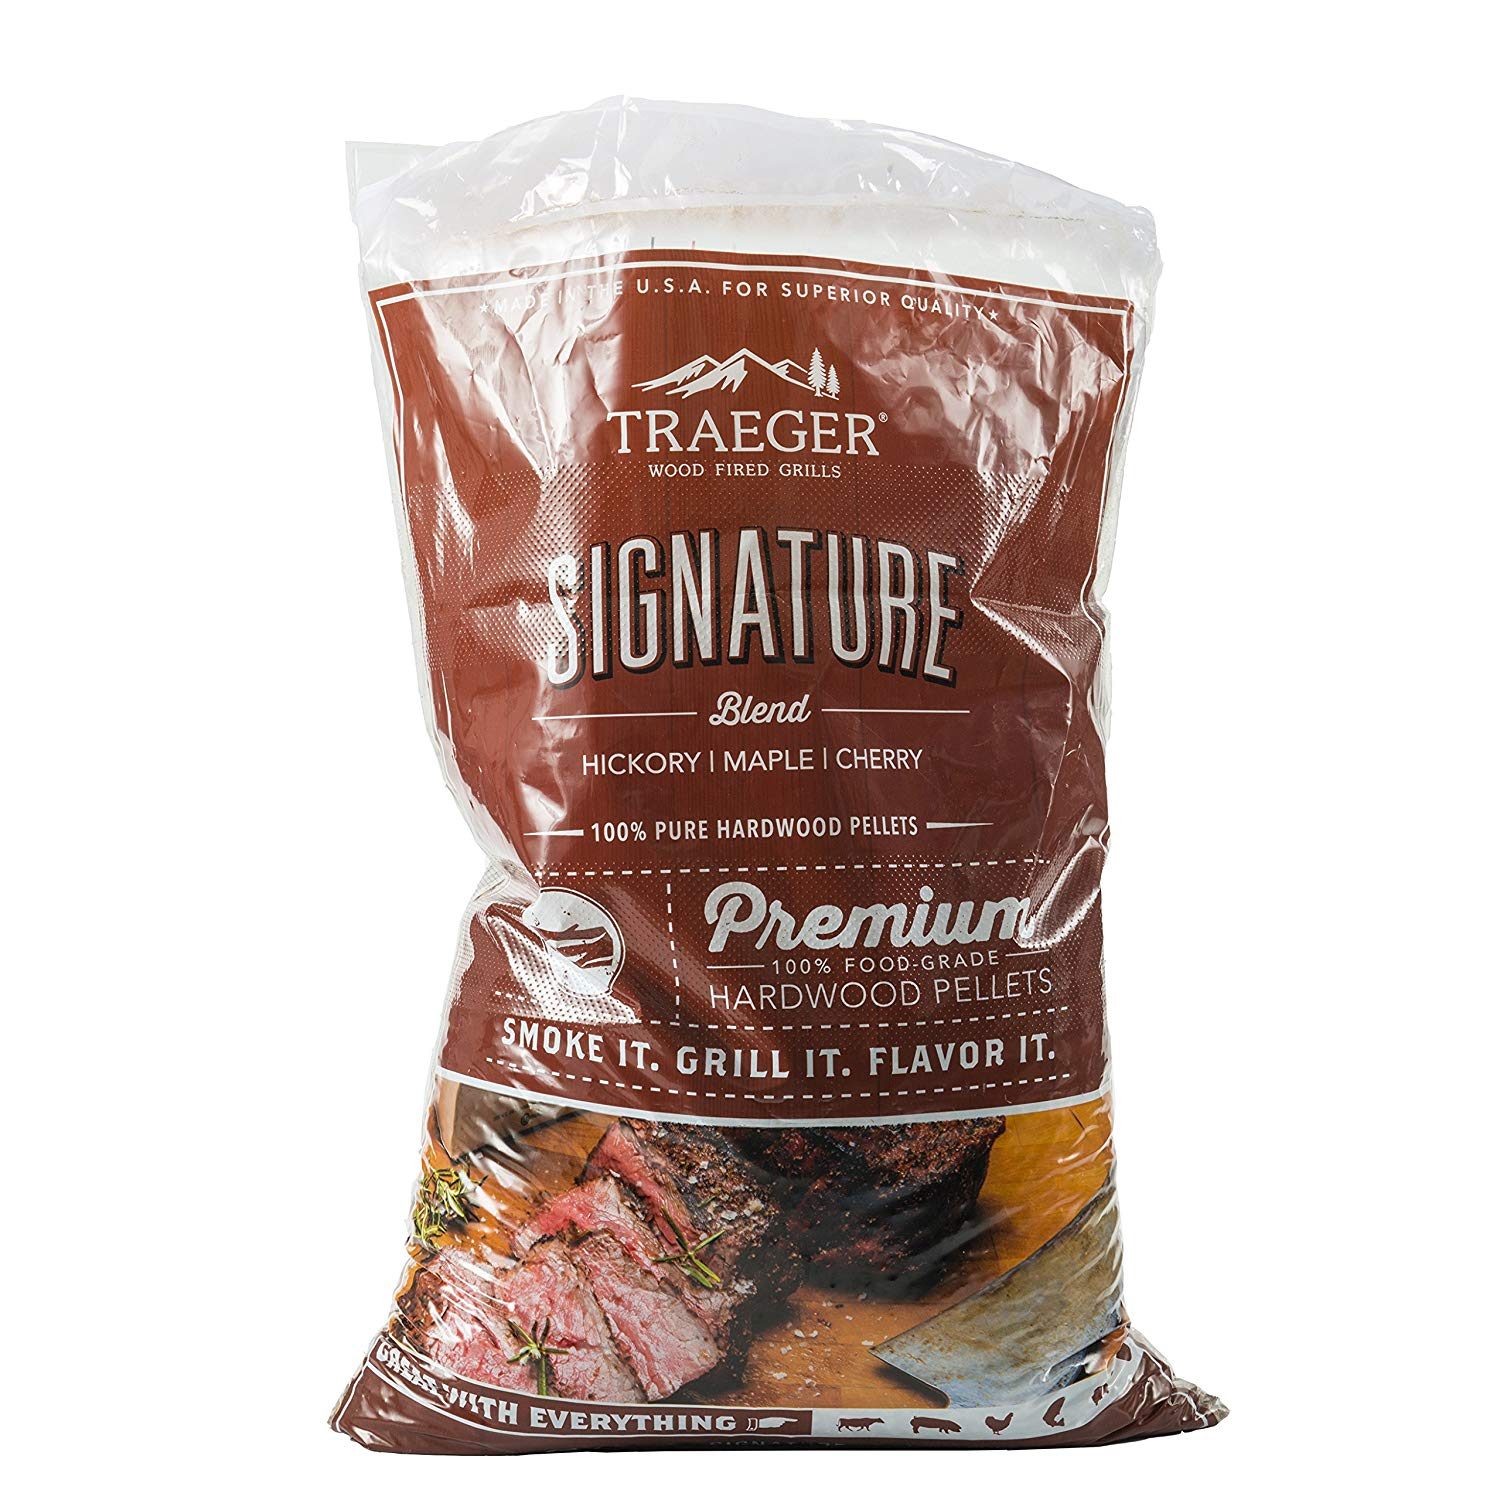 Traeger Signature Blend Hardwood Pellets